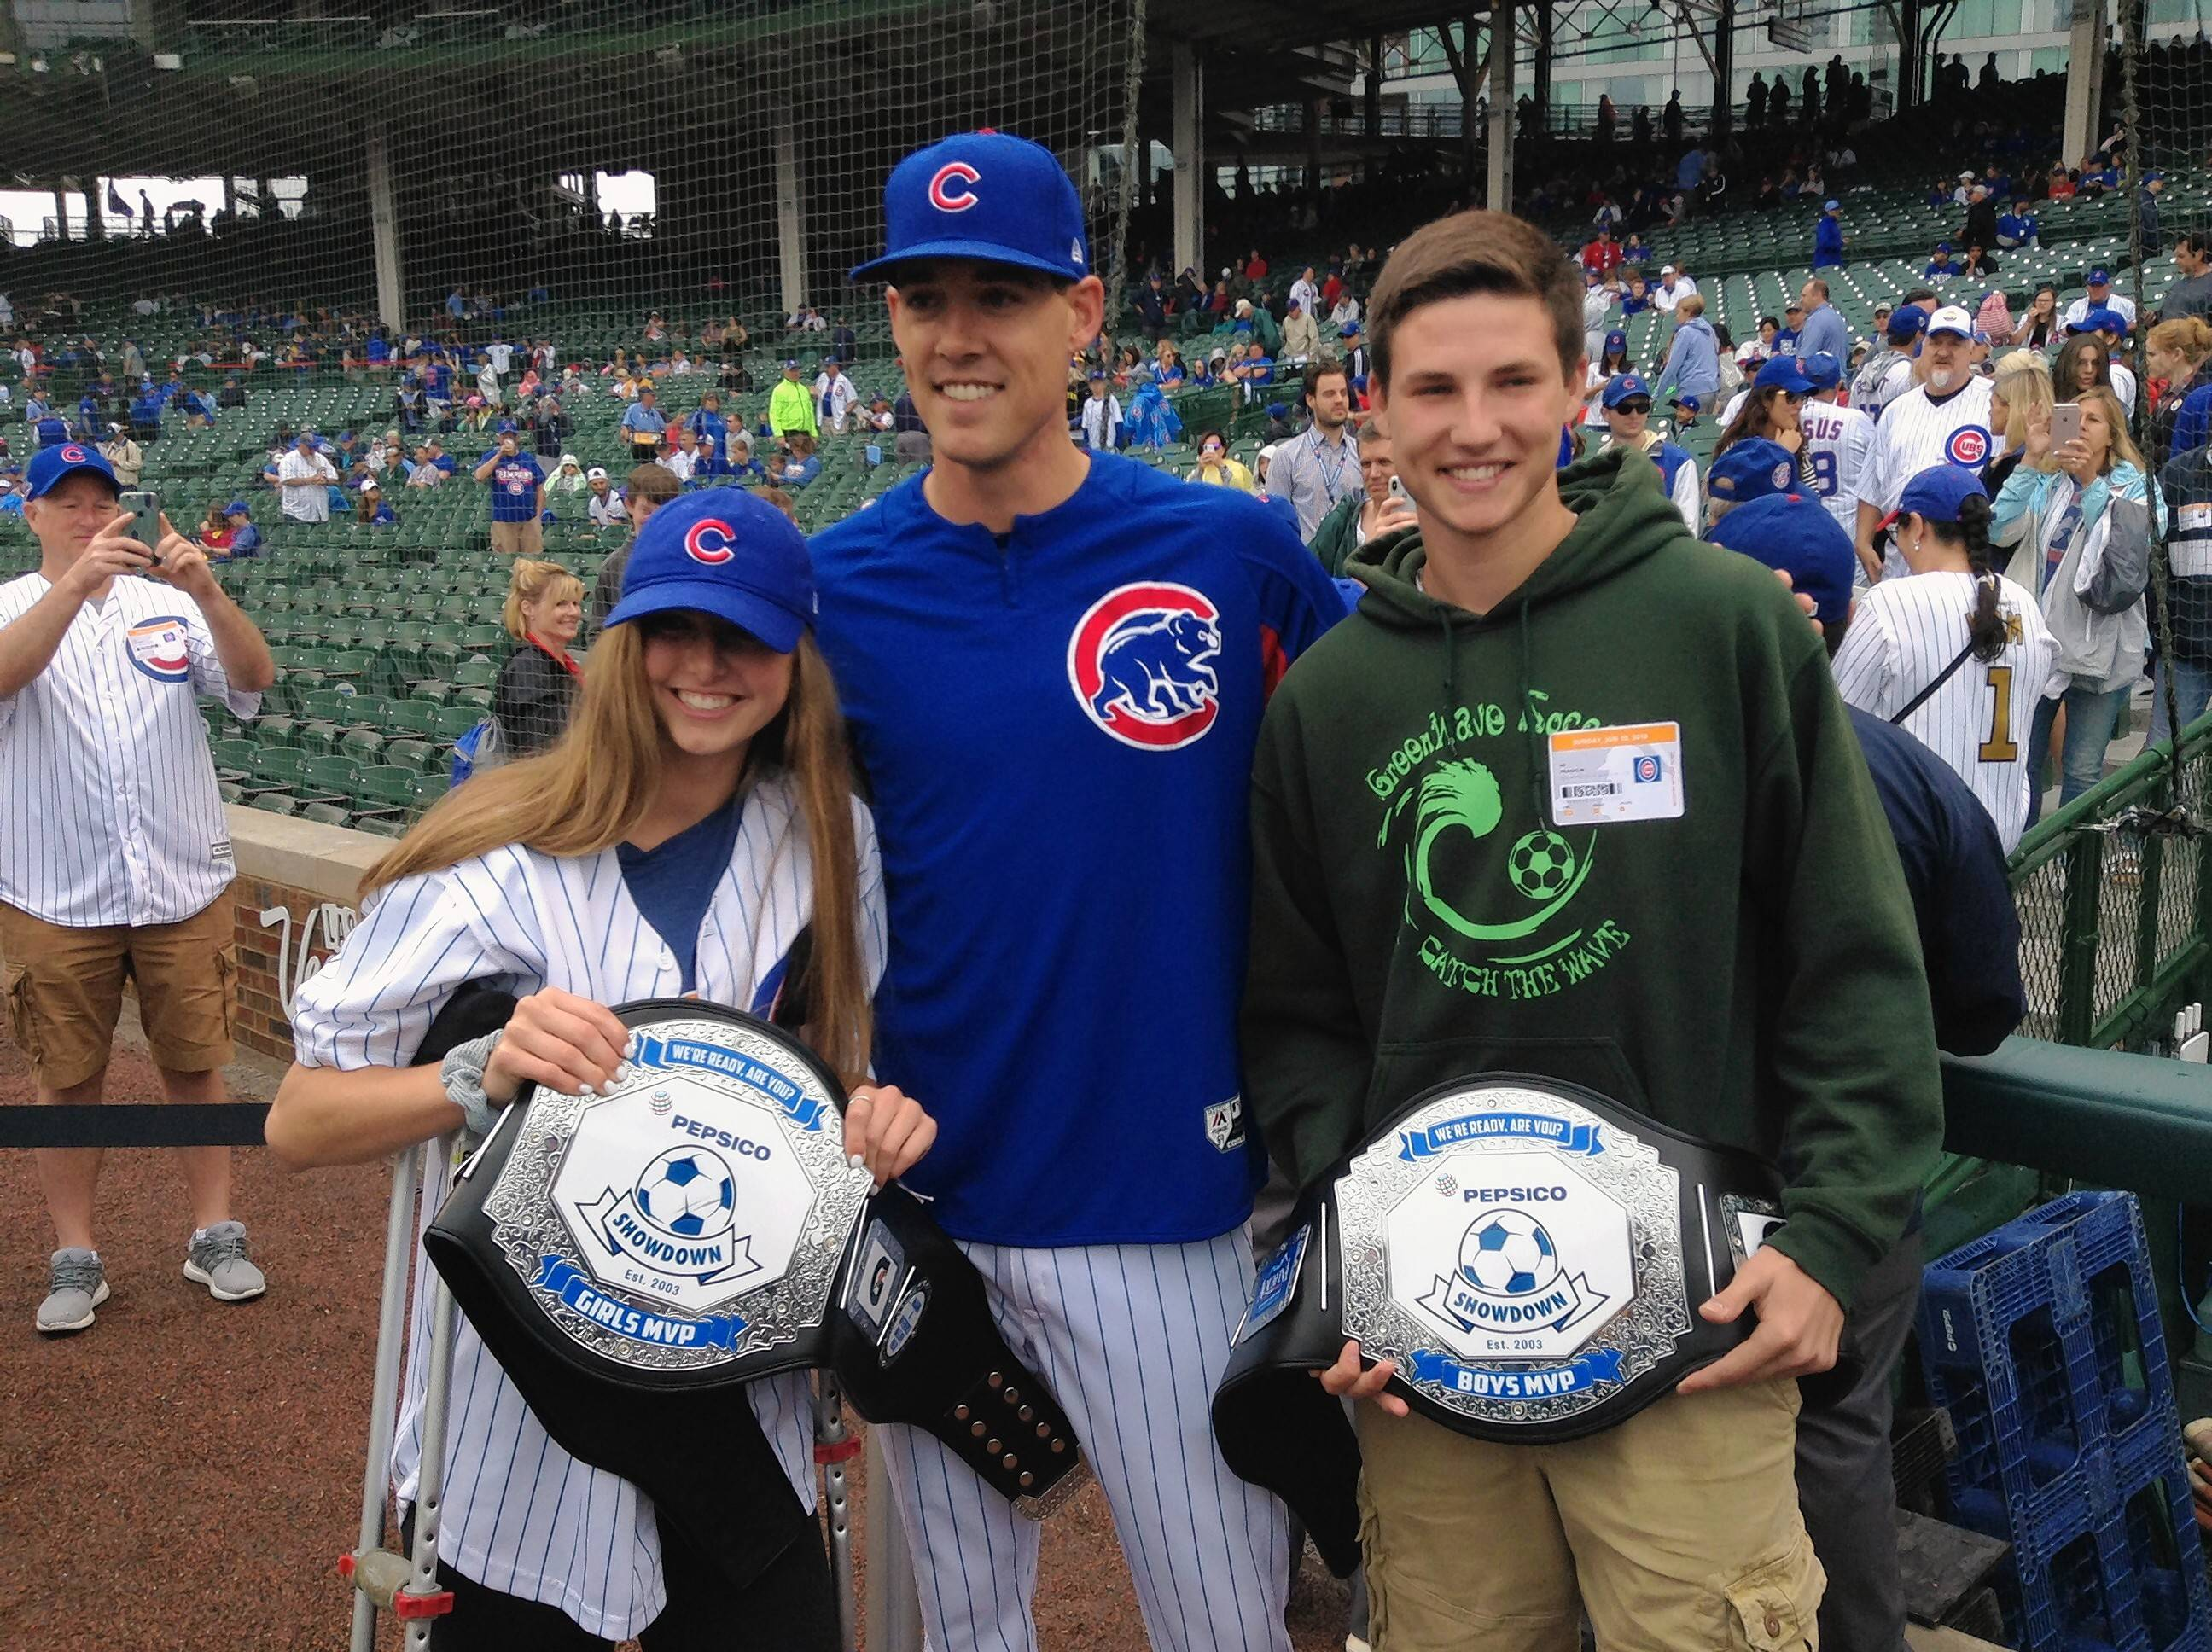 Wheaton Warrenville South's Paige Miller, left, and St. Edward's AJ Franklin were surprised by Cubs pitcher Luke Farrell with the 2017-18 PepsiCo Showdown MVP belts. Thanks to their outstanding play on the field, the two were identified as the top high school boys and girls soccer players in the 16th Annual PepsiCo Showdown, the largest high school soccer tournament in the U.S.